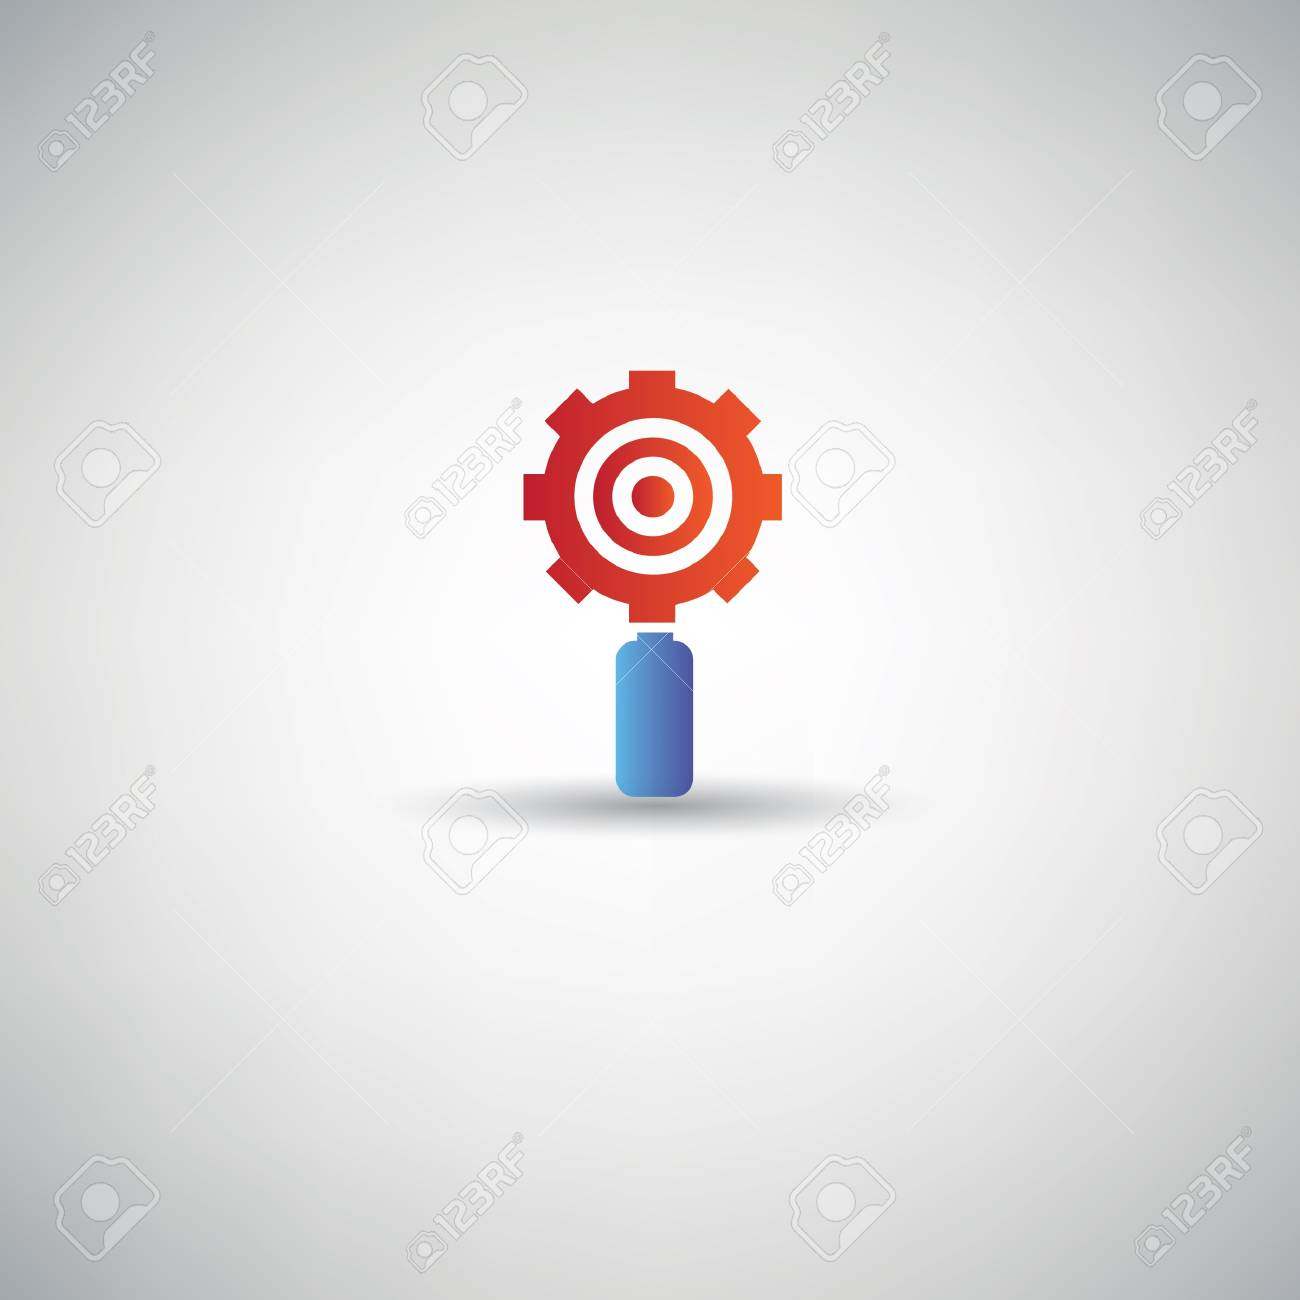 Gear symbol,vector Stock Vector - 21283527